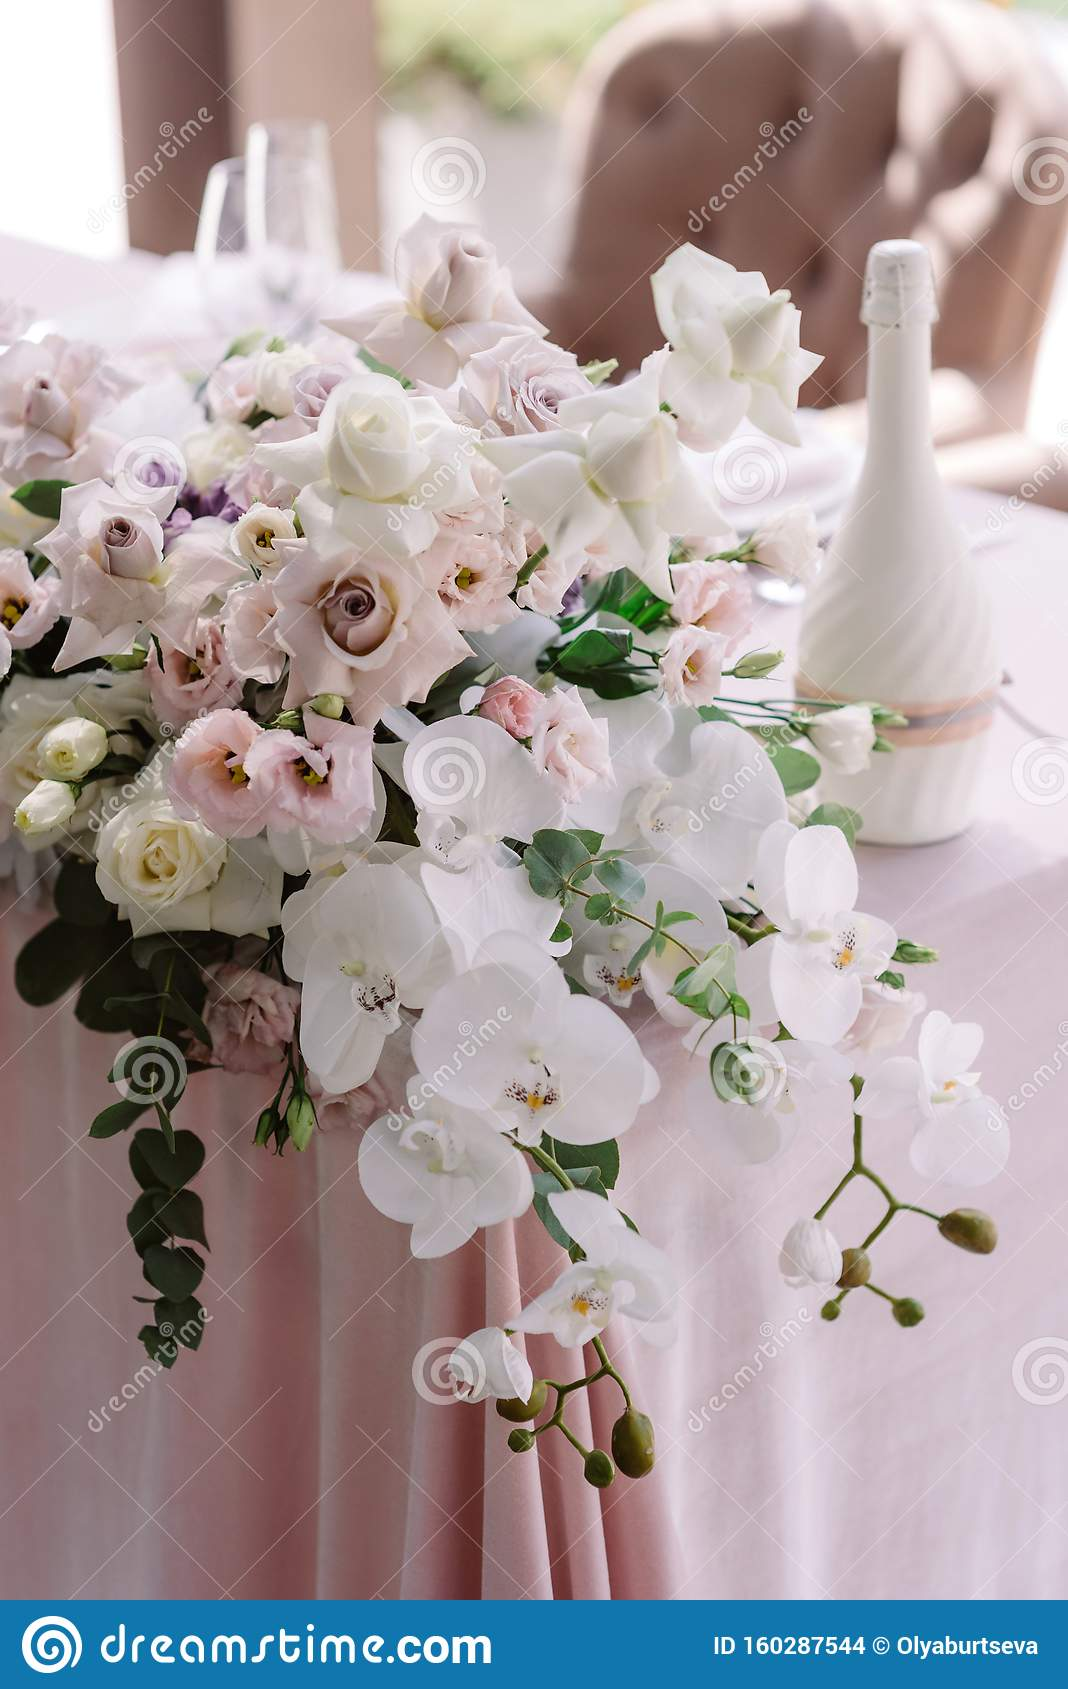 Luxurious Flowers On The Corner Of The Wedding Table Stunning White Orchids Stock Photo Image Of Flowers Design 160287544